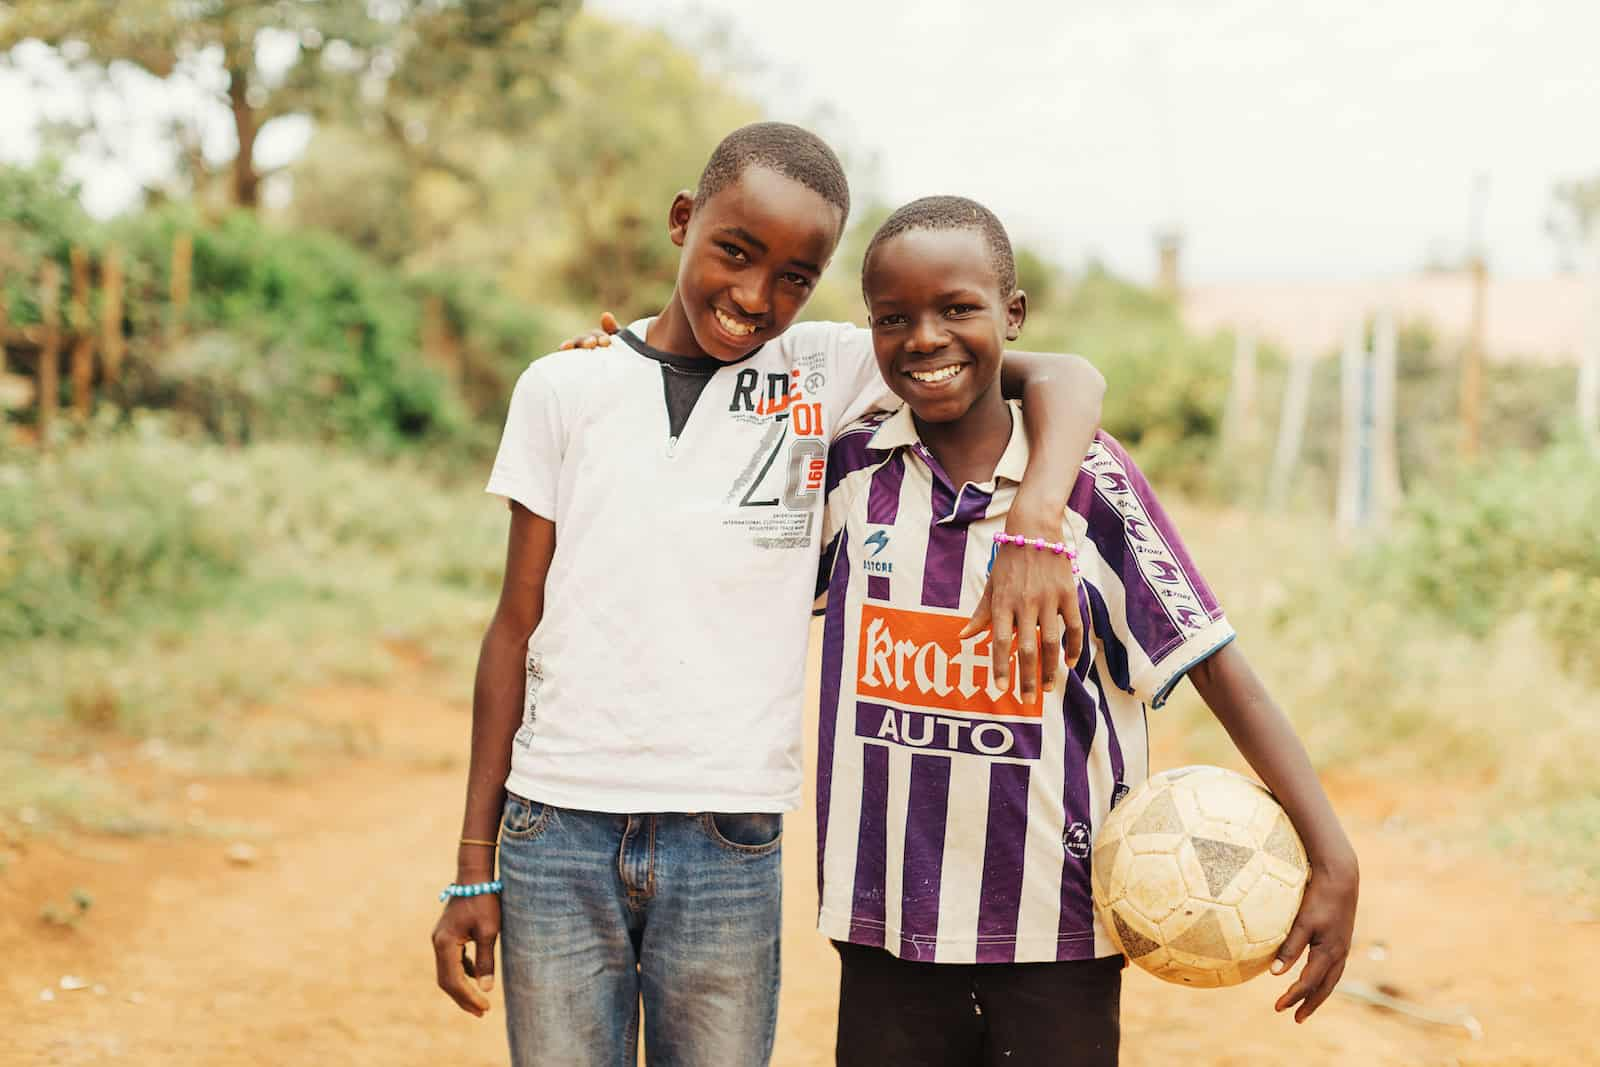 Two boys smile, one holding a soccer ball.